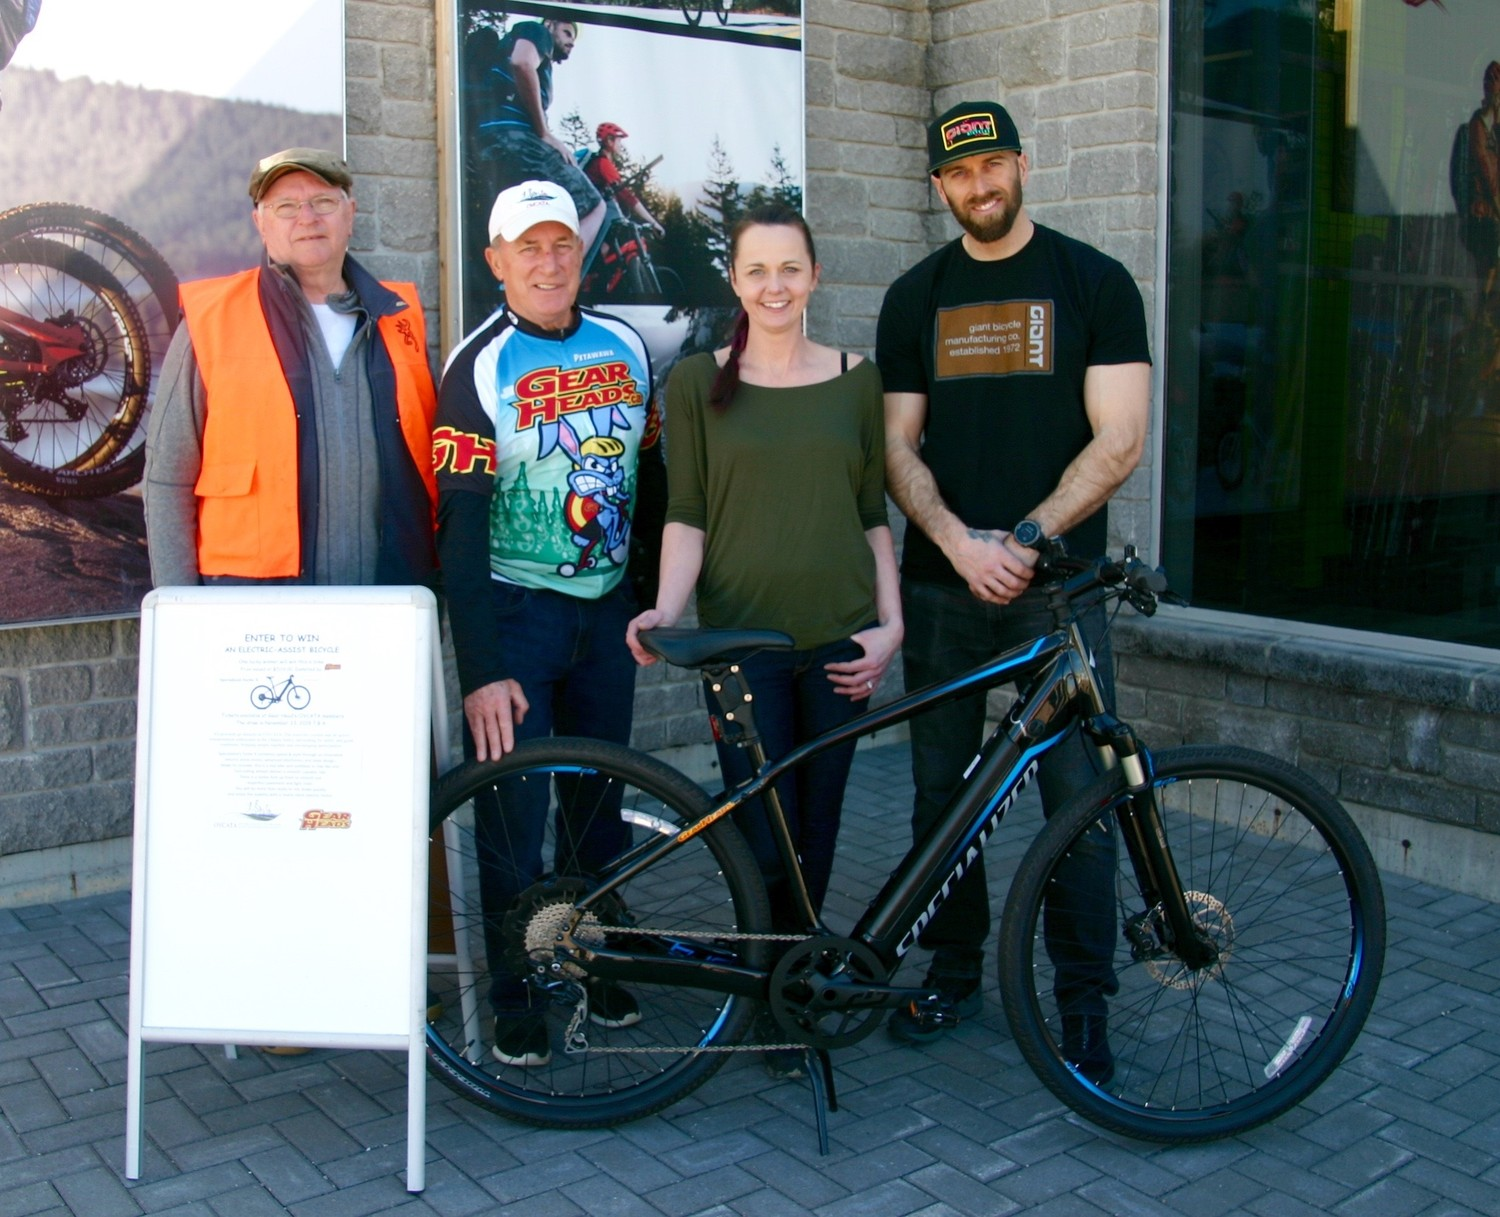 Gearheads gives OVCATA a big boost with donation of a Specialized e-bike for a fund-raising raffle. From left: OVCATA Board members Eric Price and Ron Moss and Gearheads owners Margo Johnson, Mark Johnson.